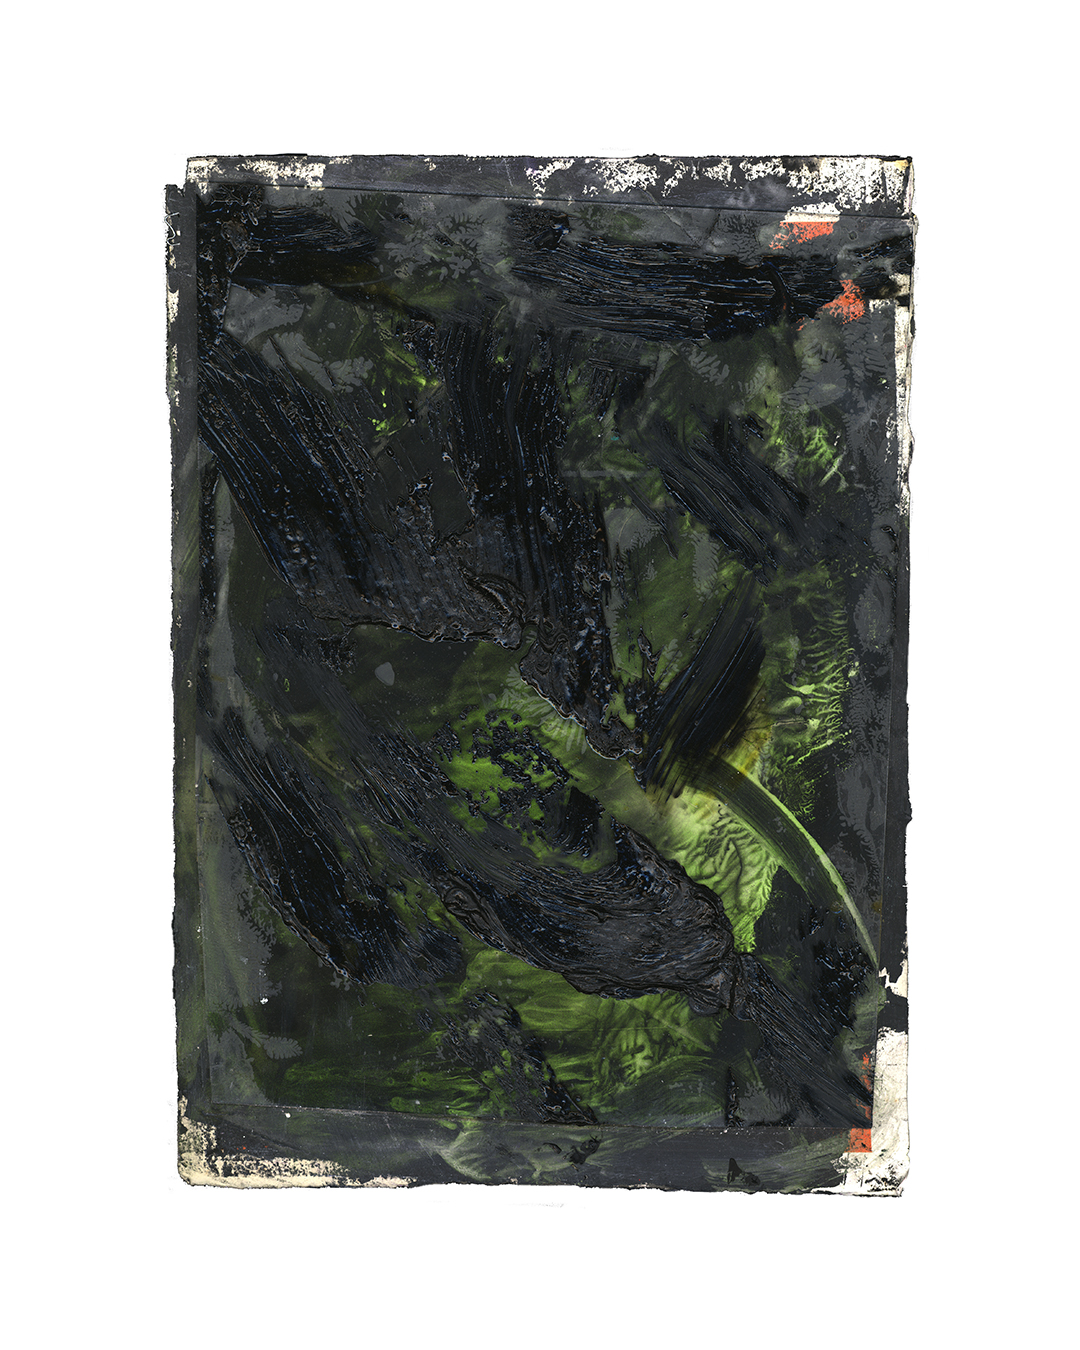 Piet Dieleman, untitled, 2020, painting, oil paint, pigment, glass, acrylic paint on paper, 395 x 285 mm, €930